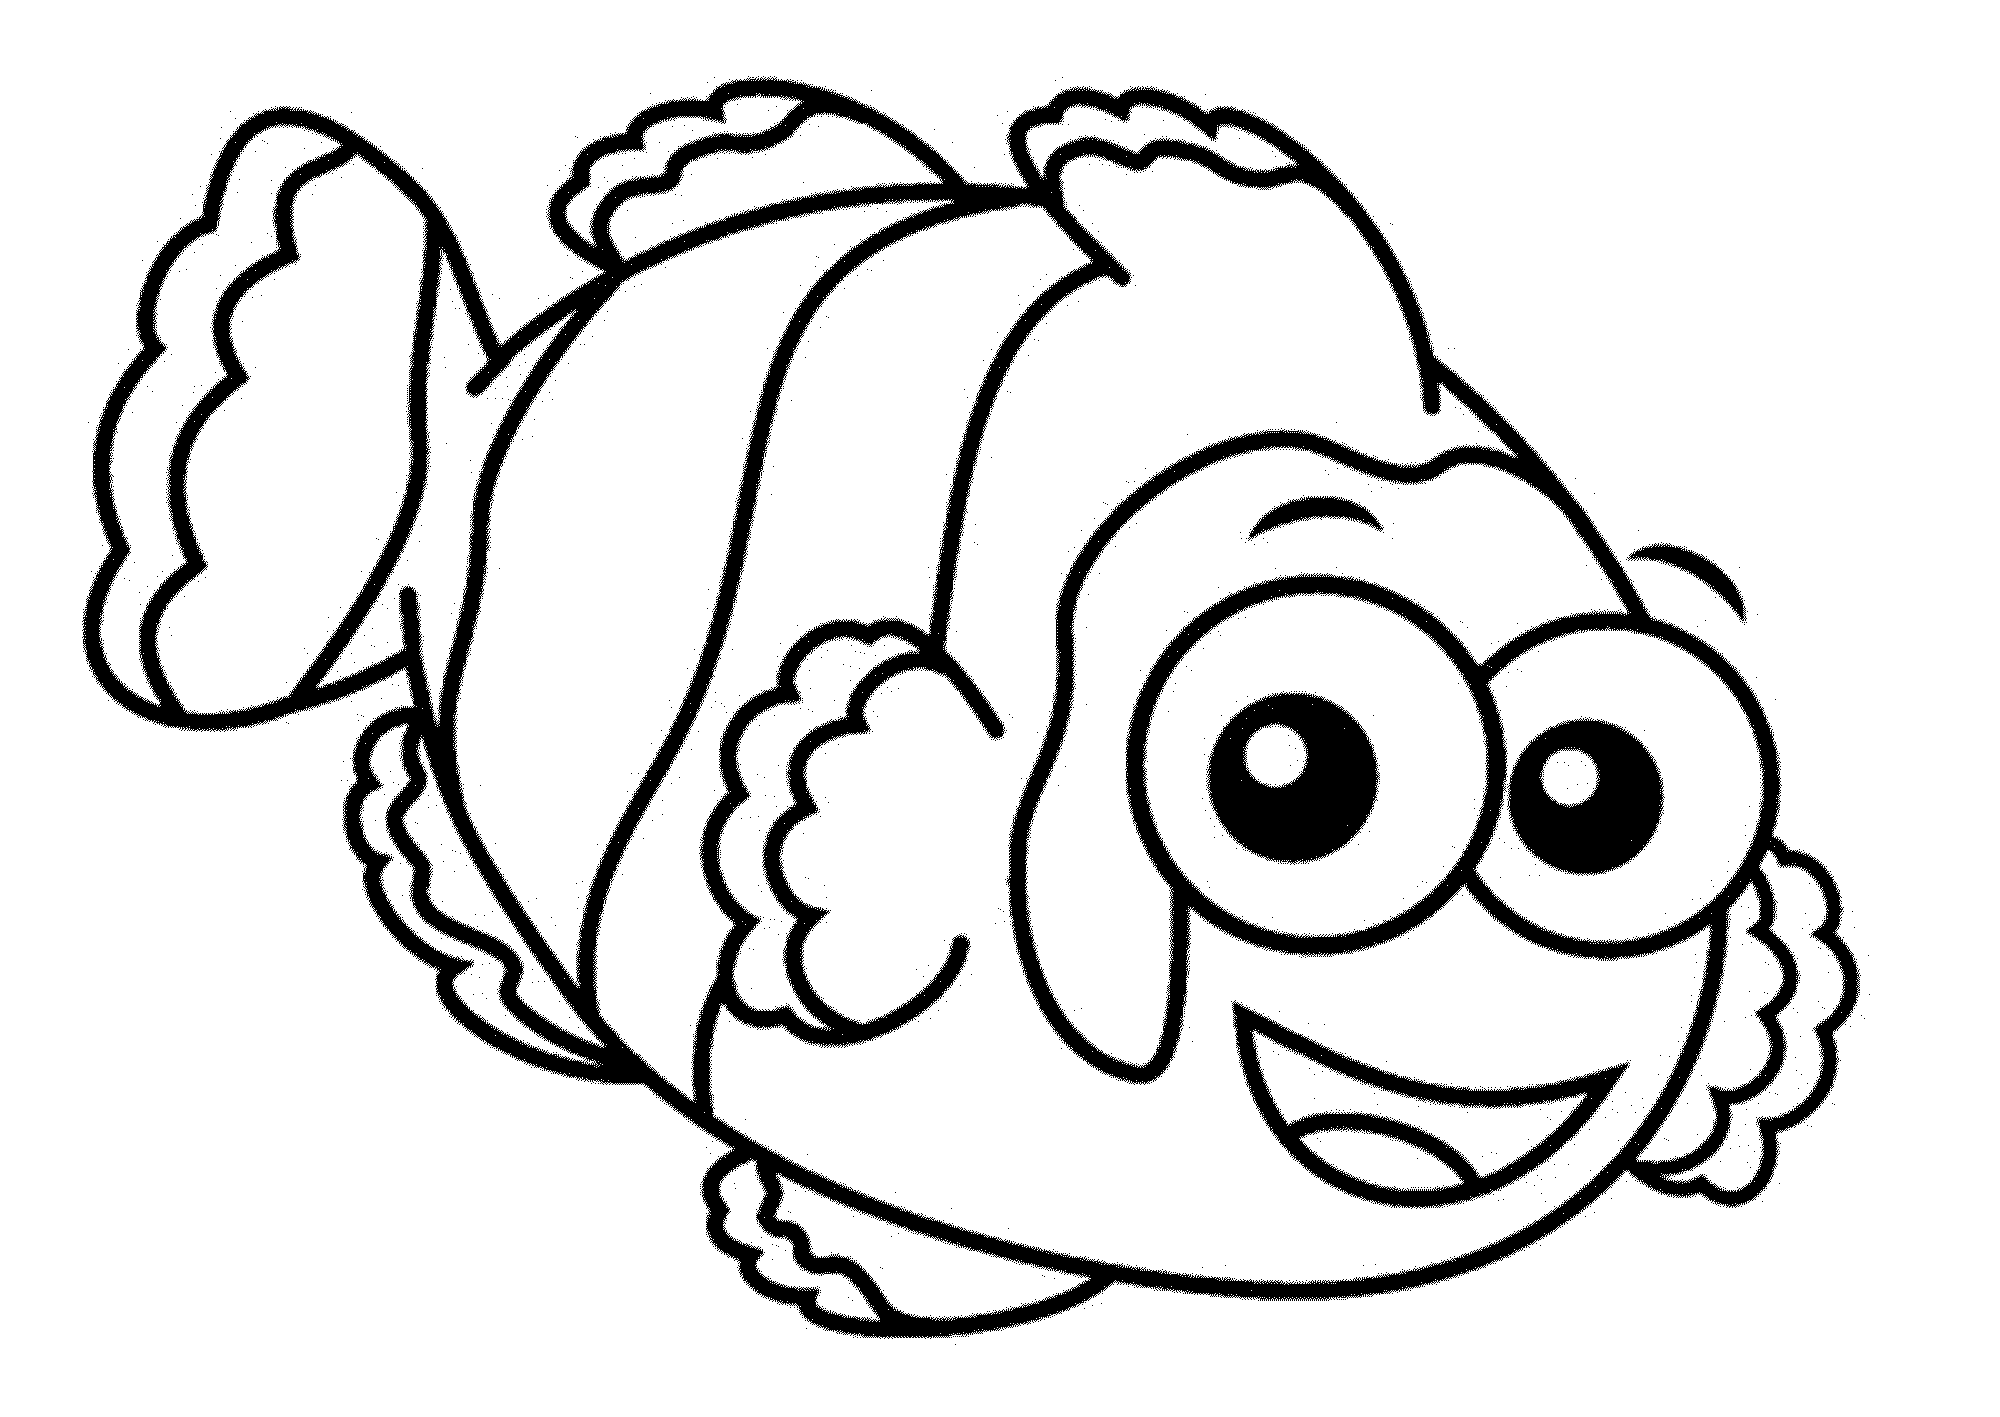 fishes coloring pages print download cute and educative fish coloring pages fishes pages coloring